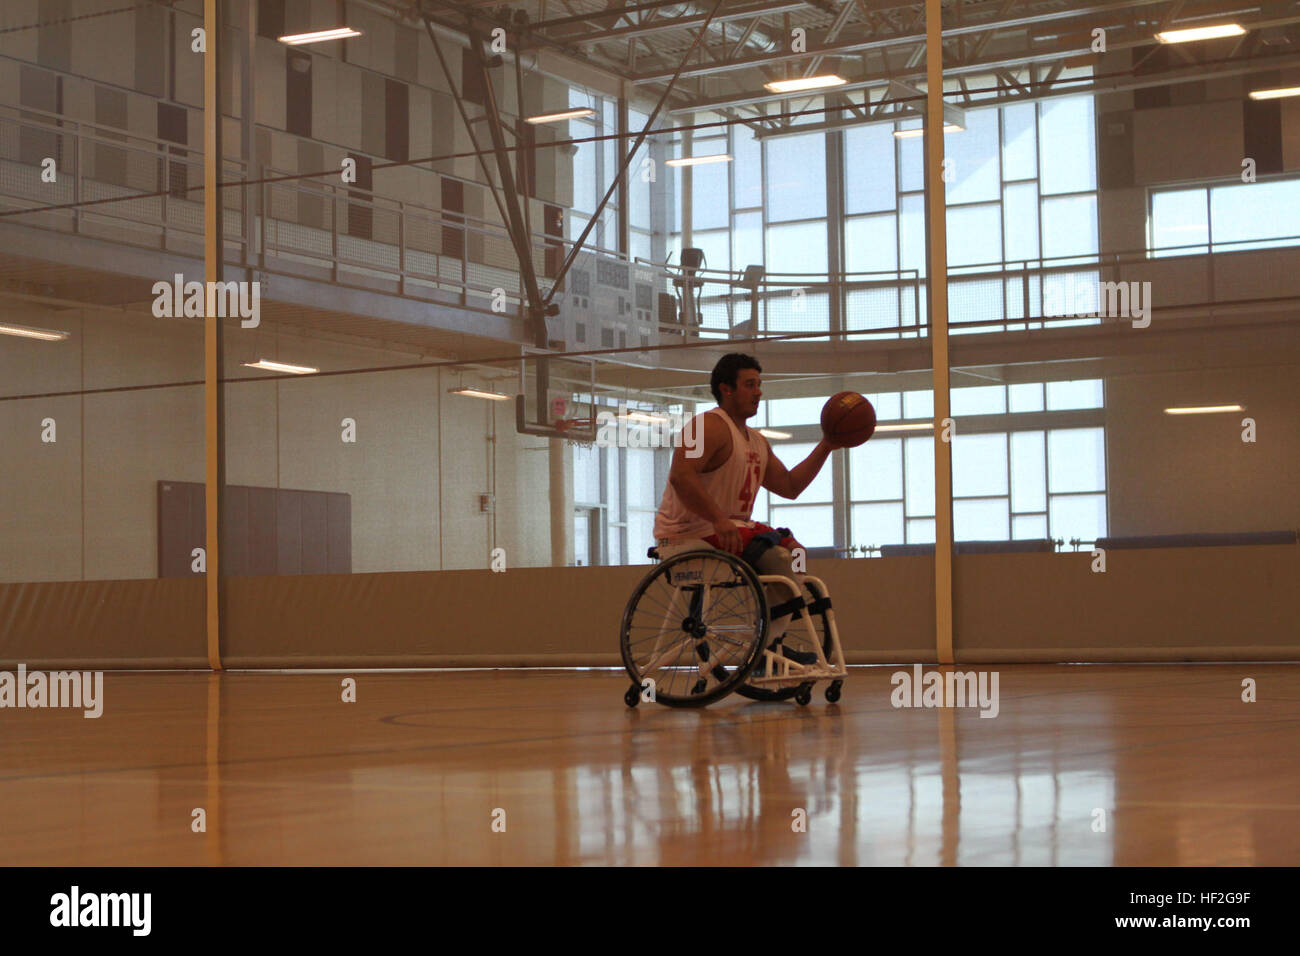 Sgt. Eric Rodriguez, a native of San Diego, California, dribbles down the court during wheelchair basketball practice - Stock Image